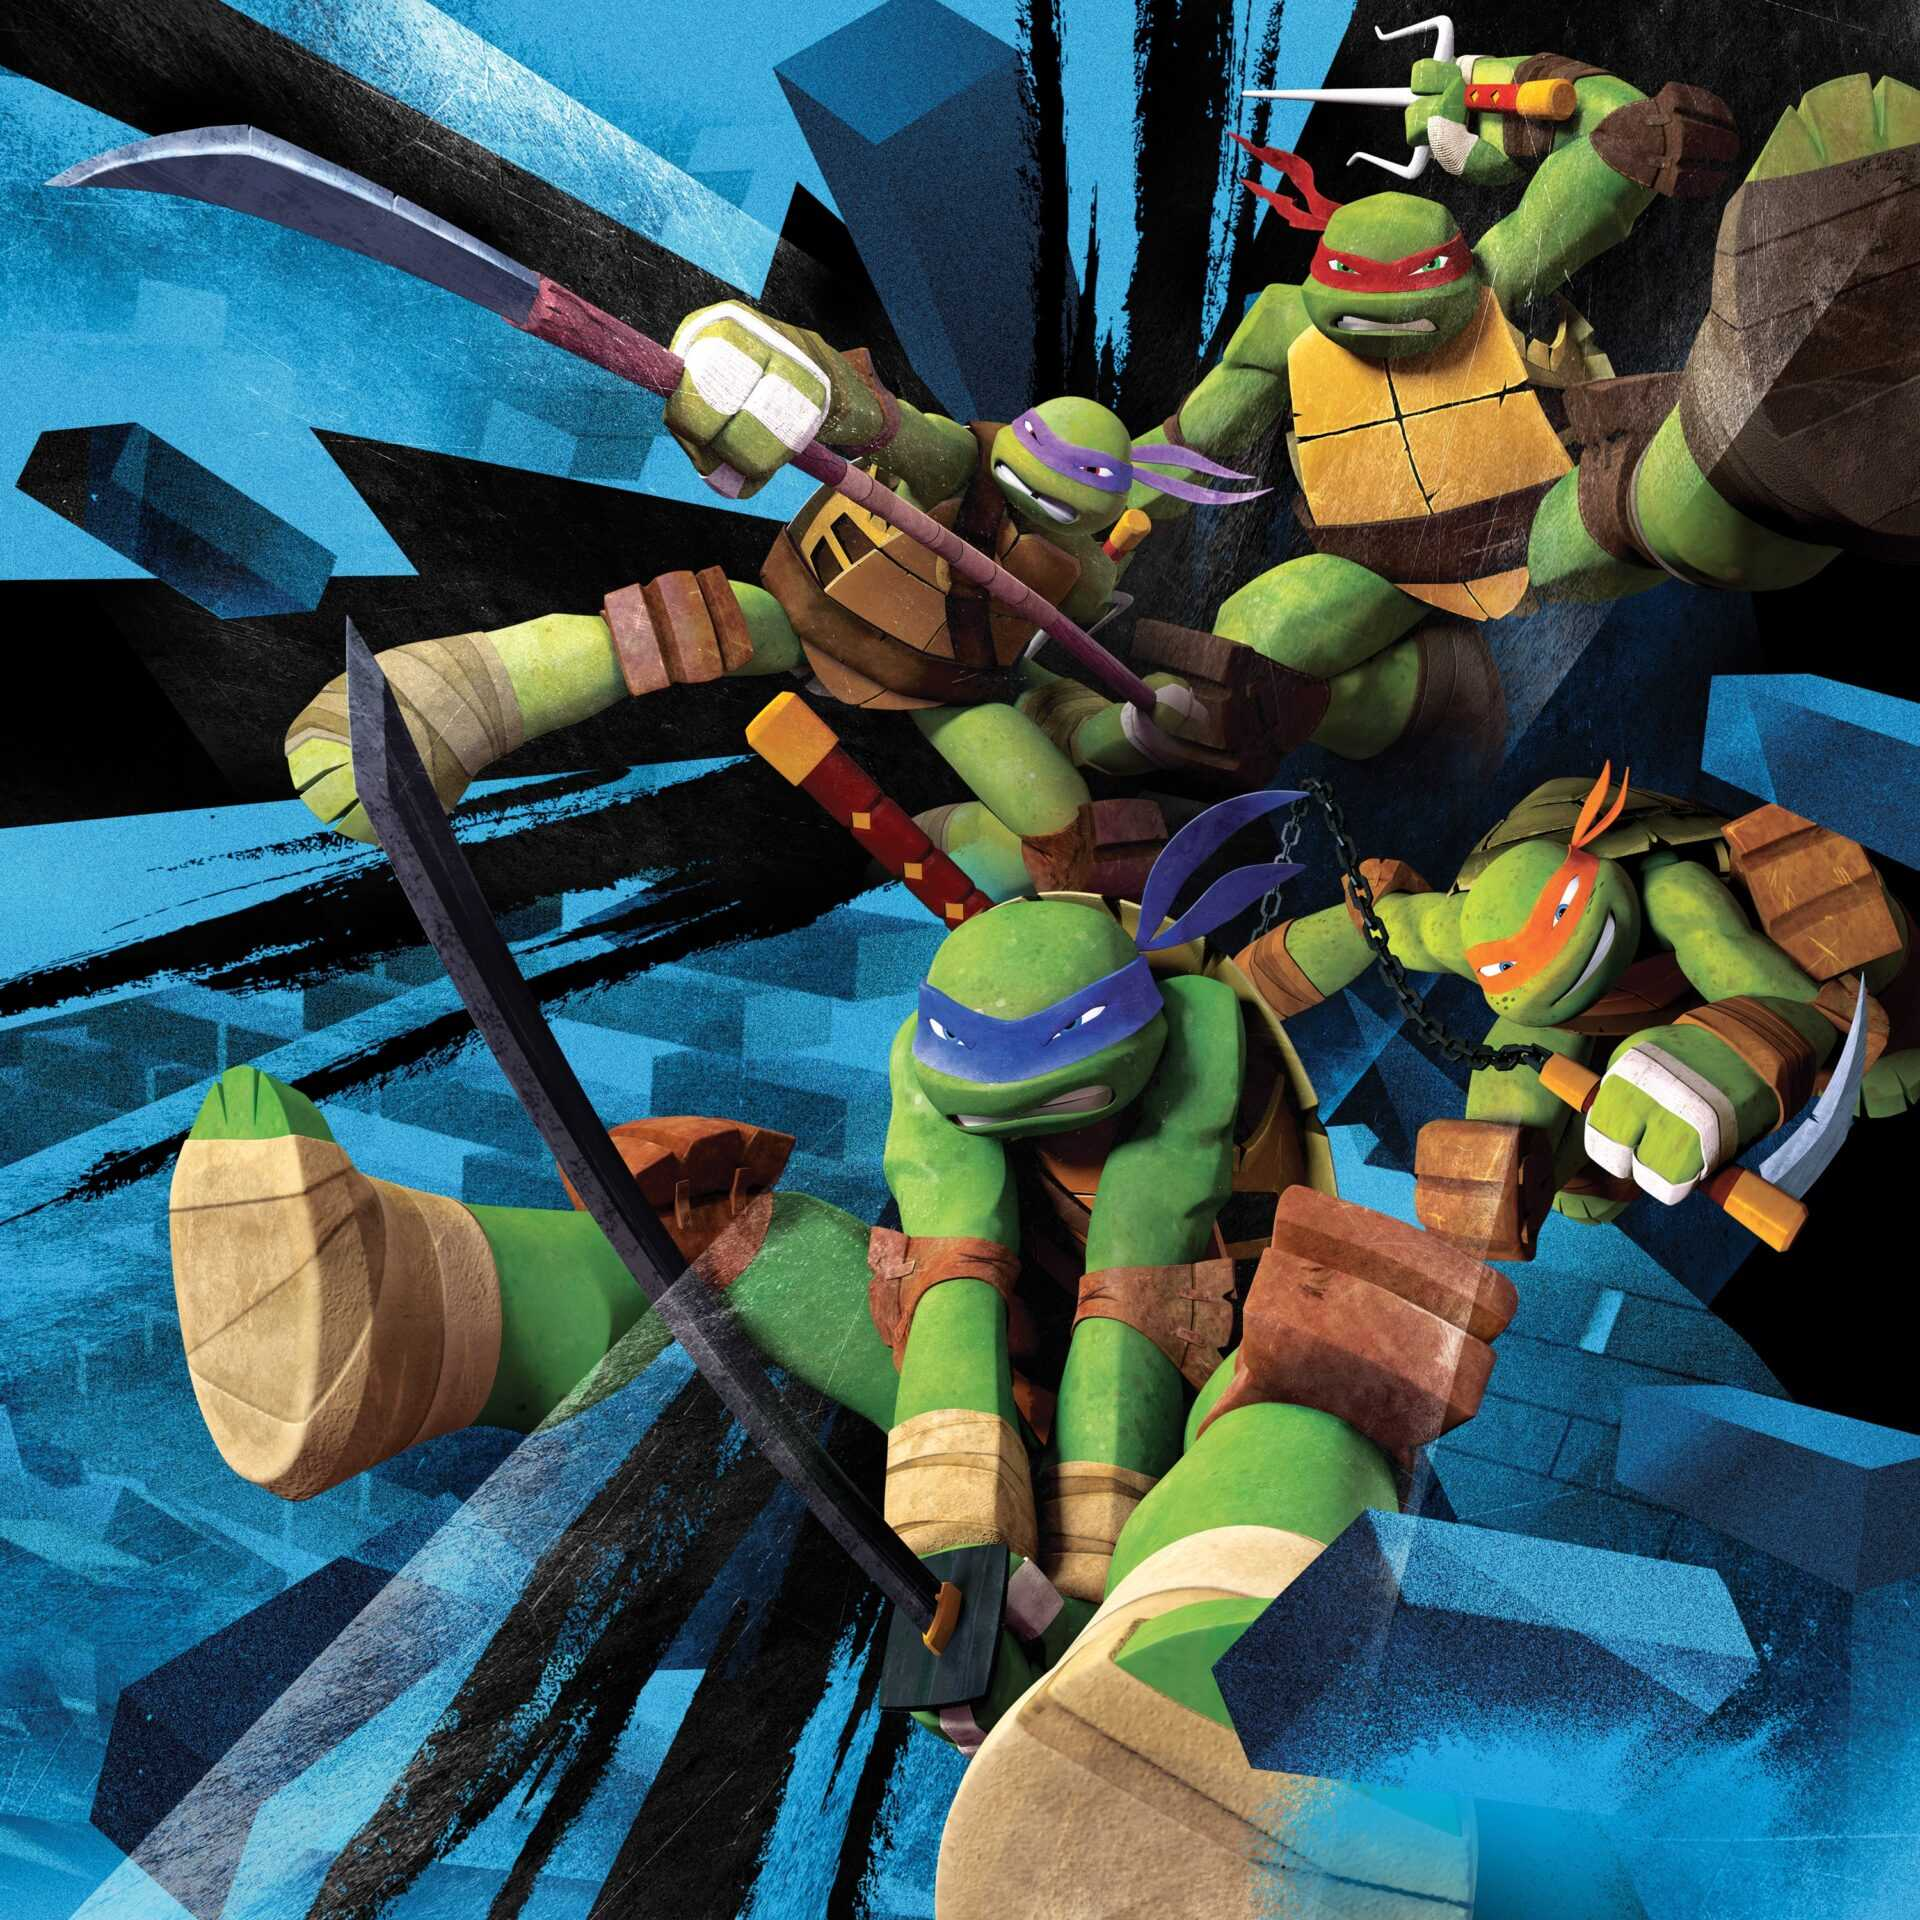 Teenage Mutant Ninja Turtle: le tartarughe Ninja arrivano su Super! | Digitale terrestre: Dtti.it